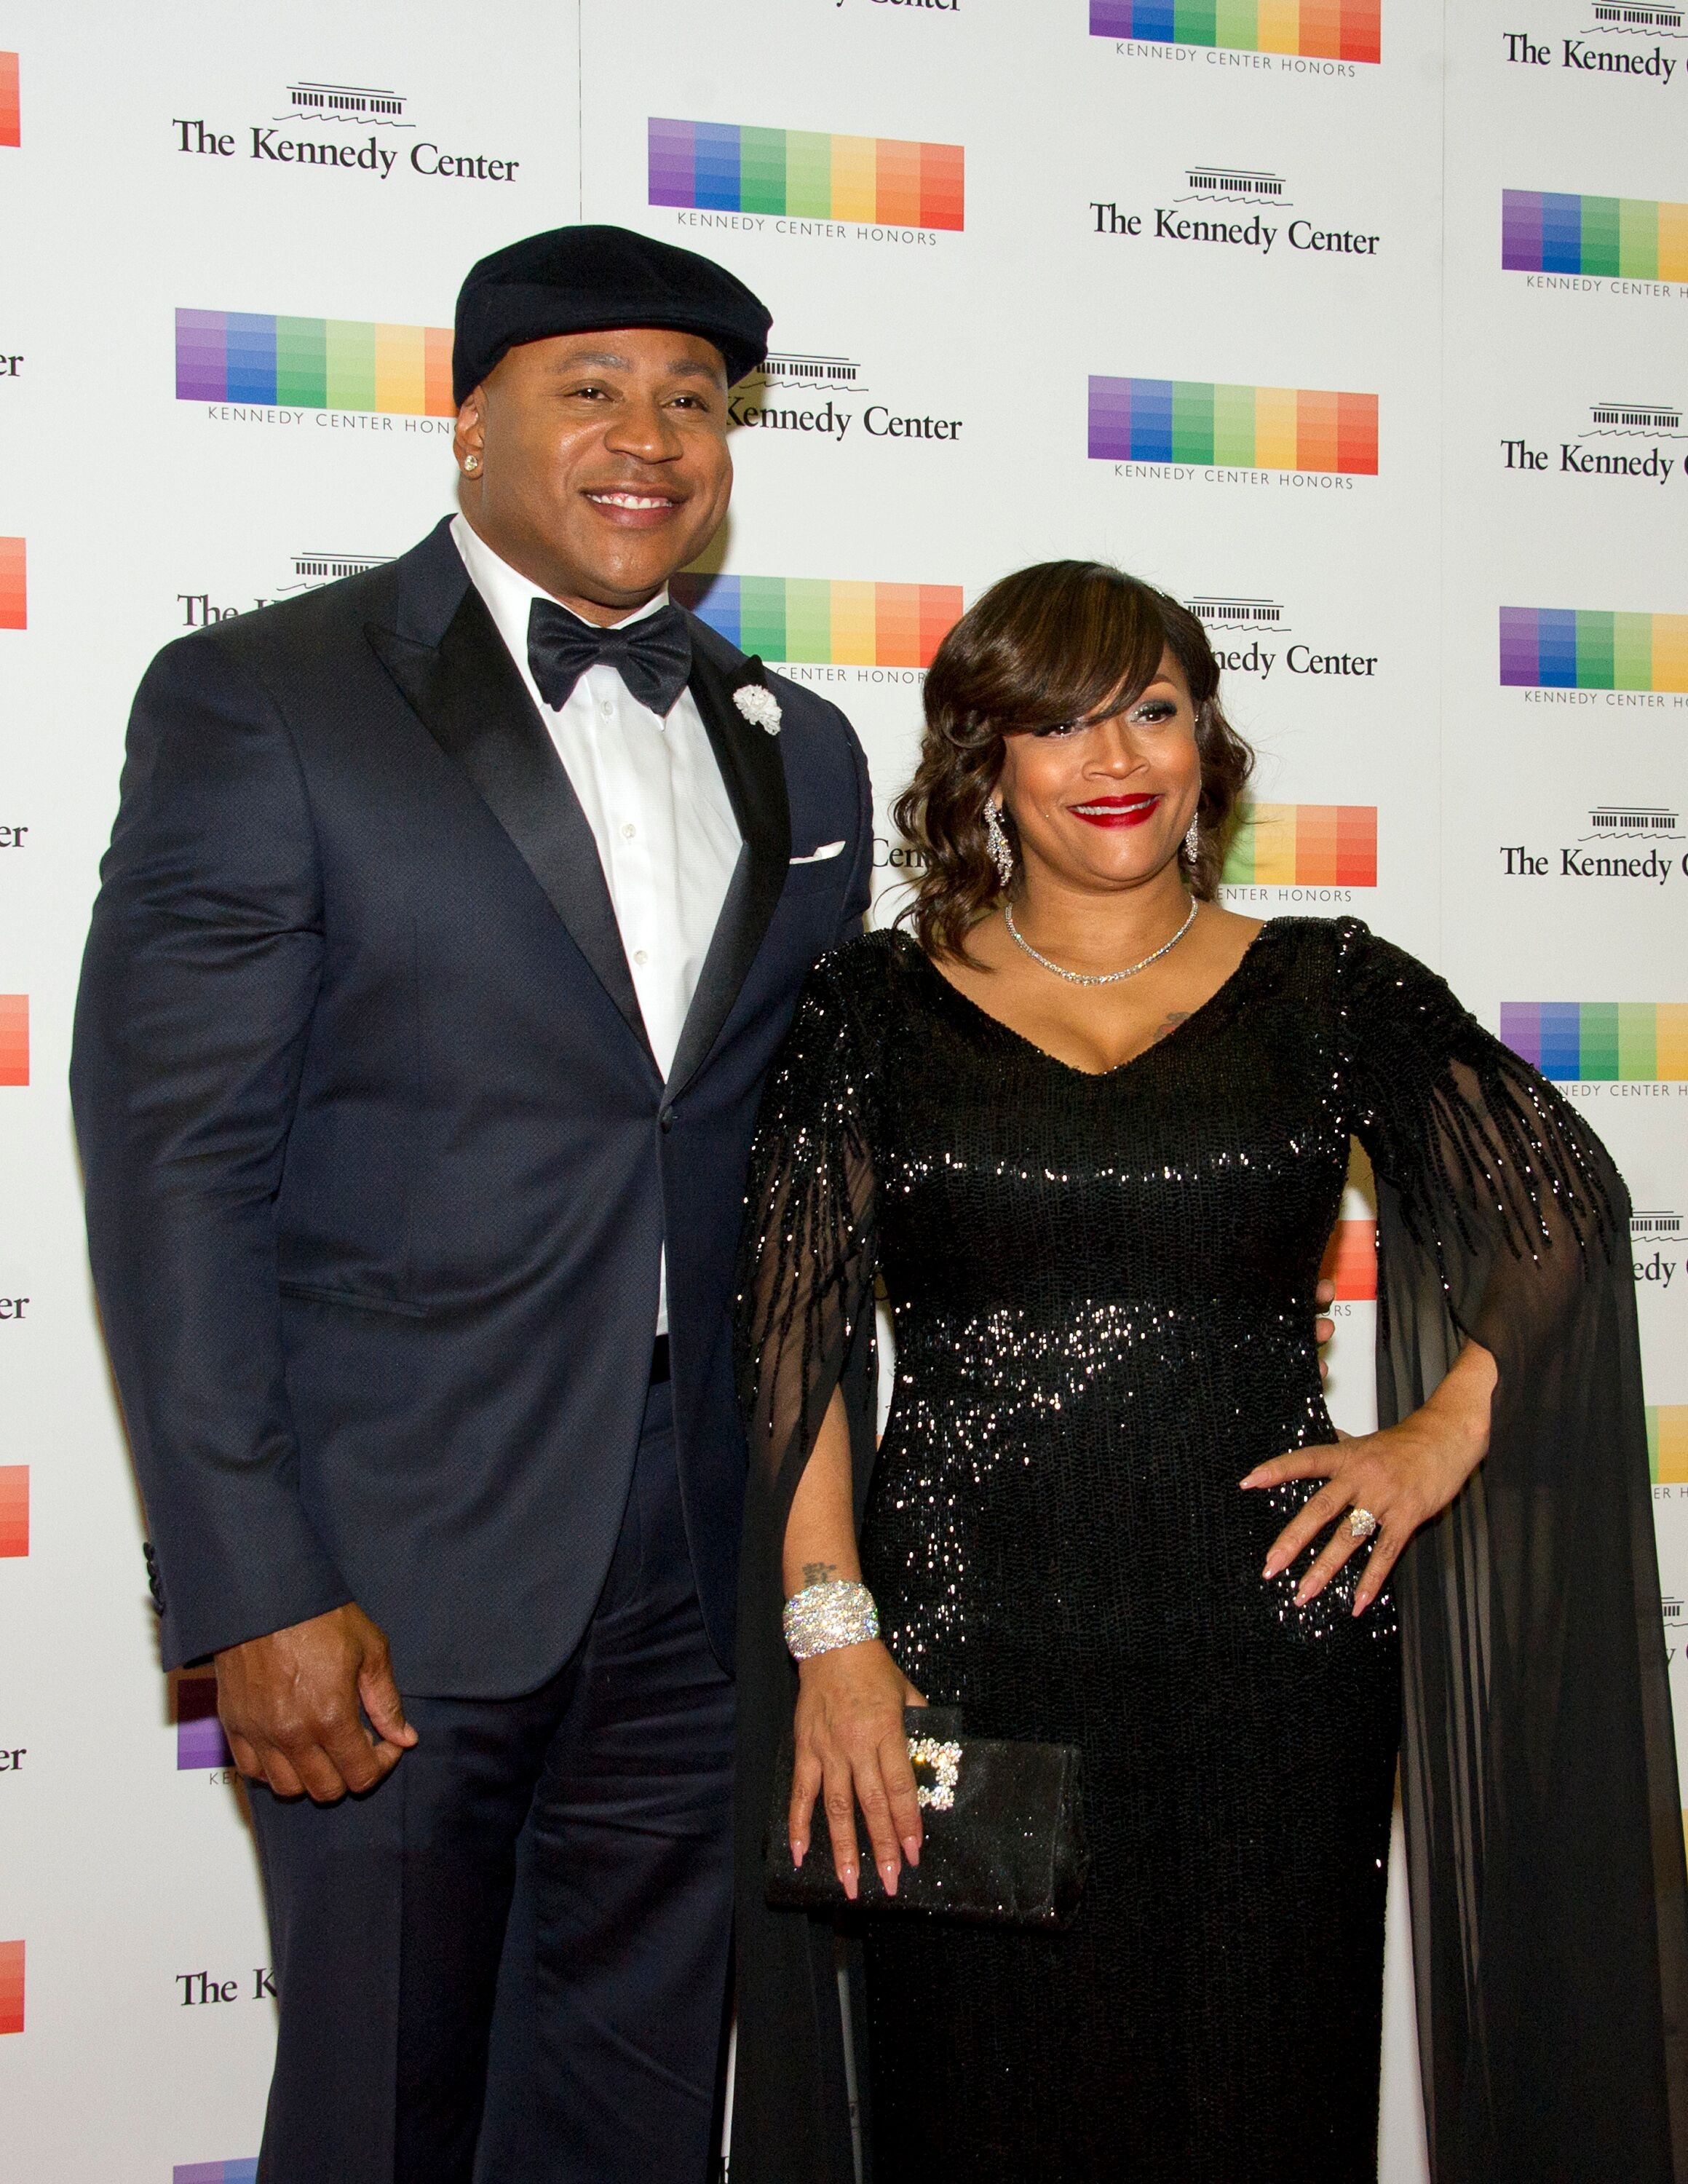 LL Cool J and Simone Smith at The Kennedy Center | Source: Getty Images/GlobalImagesUkraine